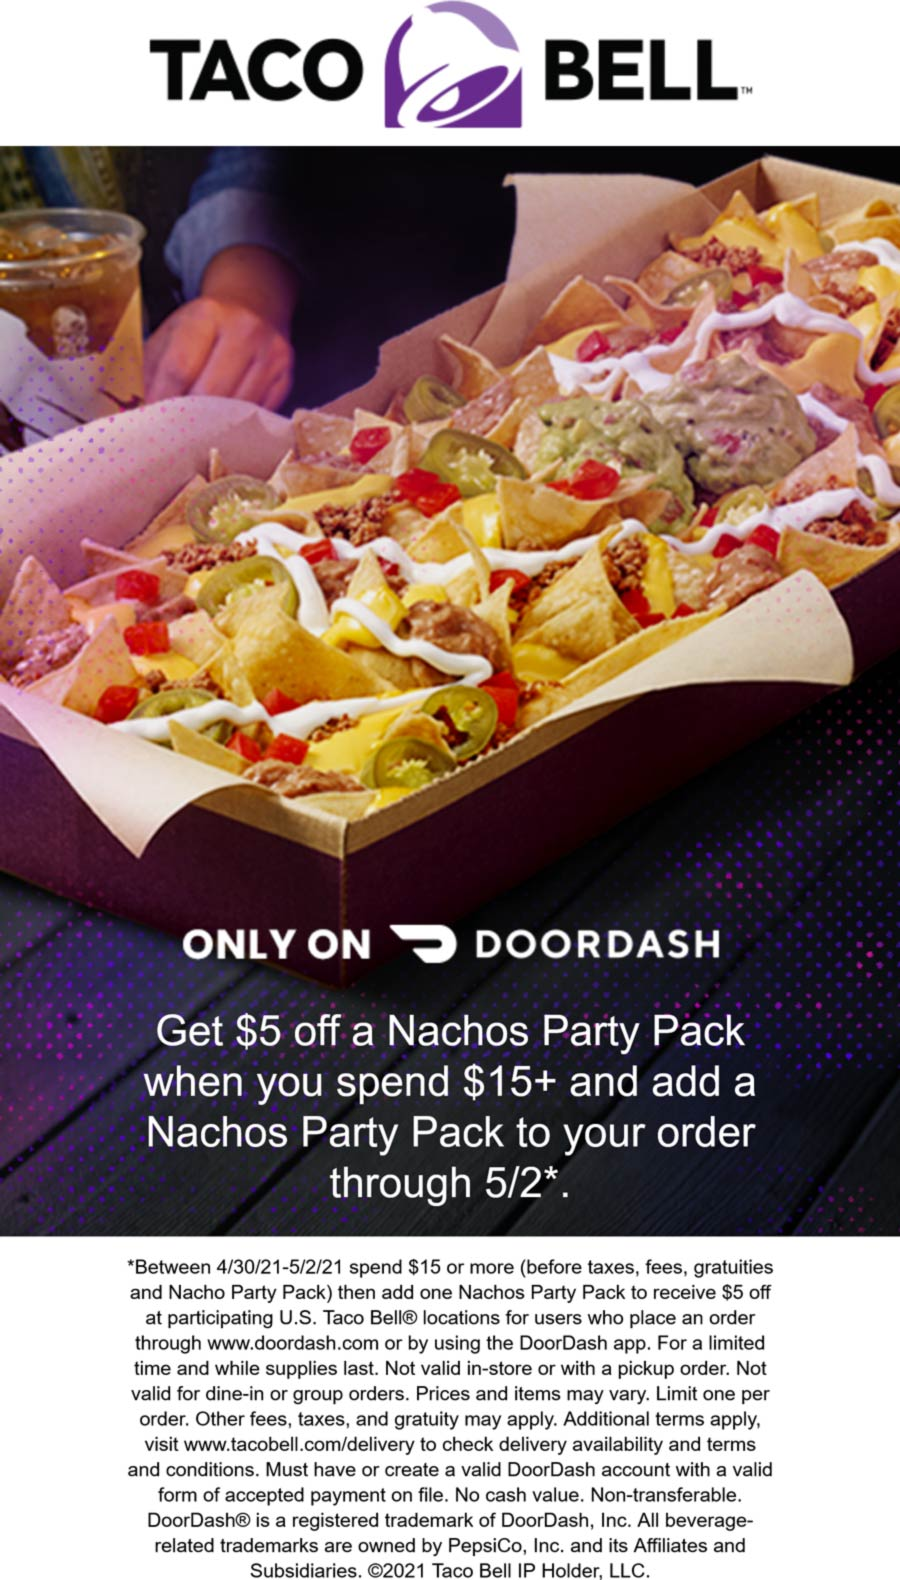 Taco Bell restaurants Coupon  $5 off a nacho party pack on $15 delivery at Taco Bell #tacobell